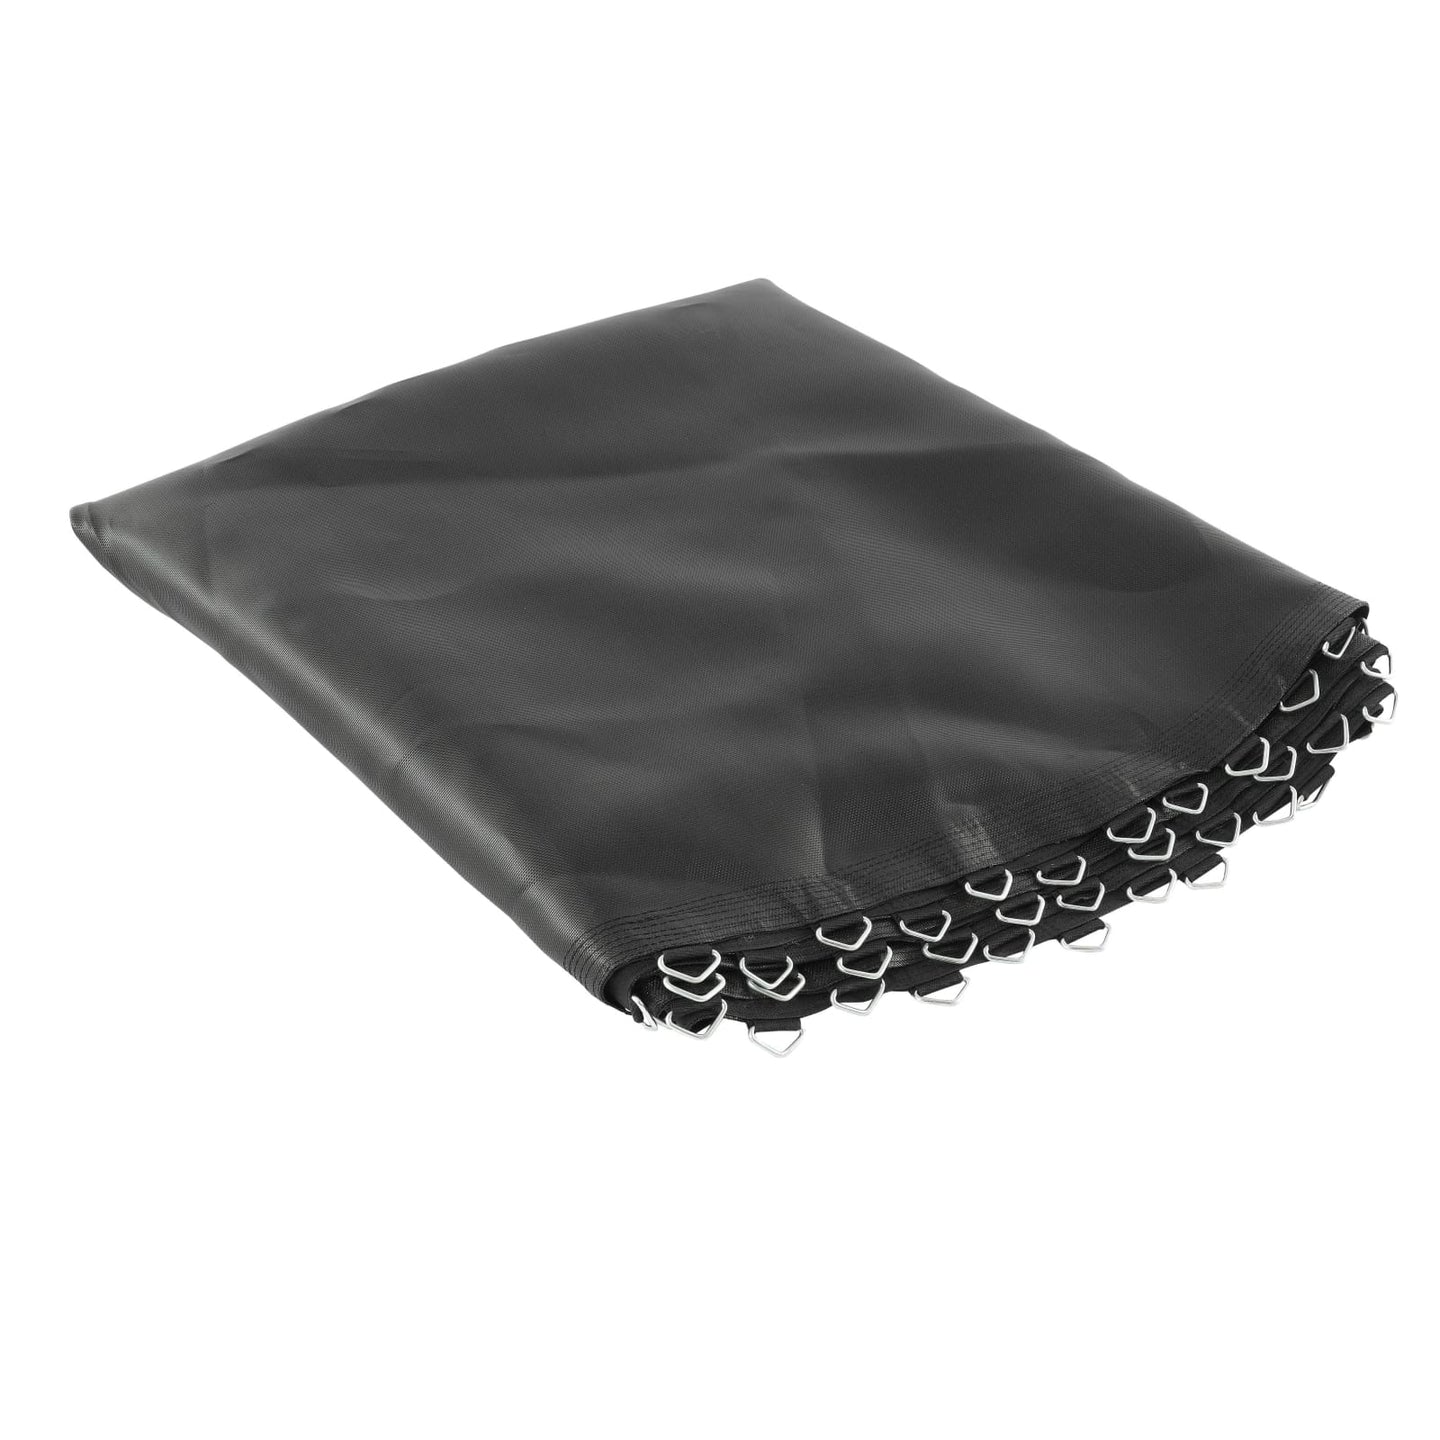 Upper Bounce Trampoline Replacement Jumping Mat Fits For 15 Ft. Round Frames W/ 96 V-Rings 7 Springs - Trampoline Replacements